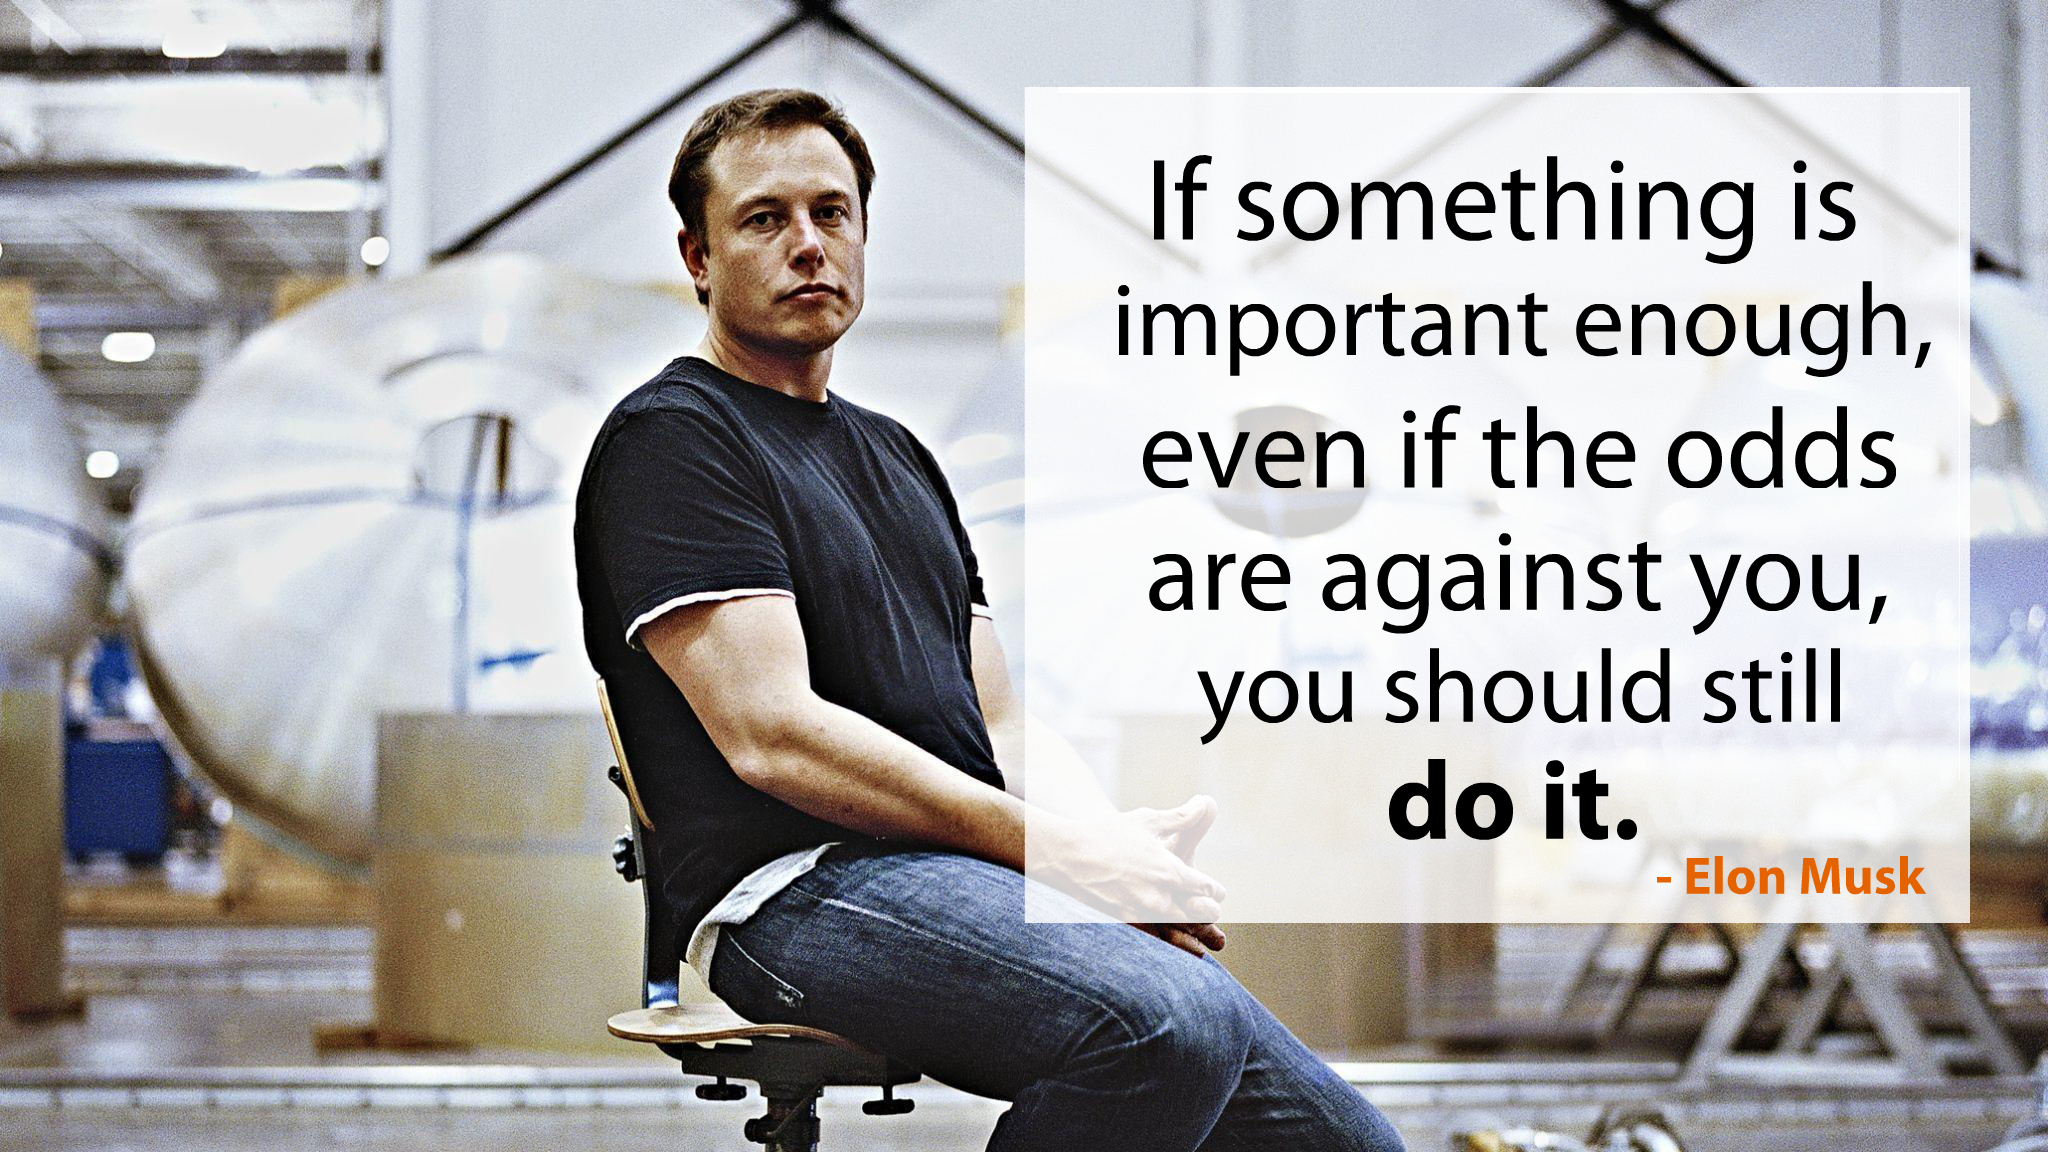 If something is important enough, even if the odds are against you, you should still do it – Elon Musk [ 2048 x 1152 ]